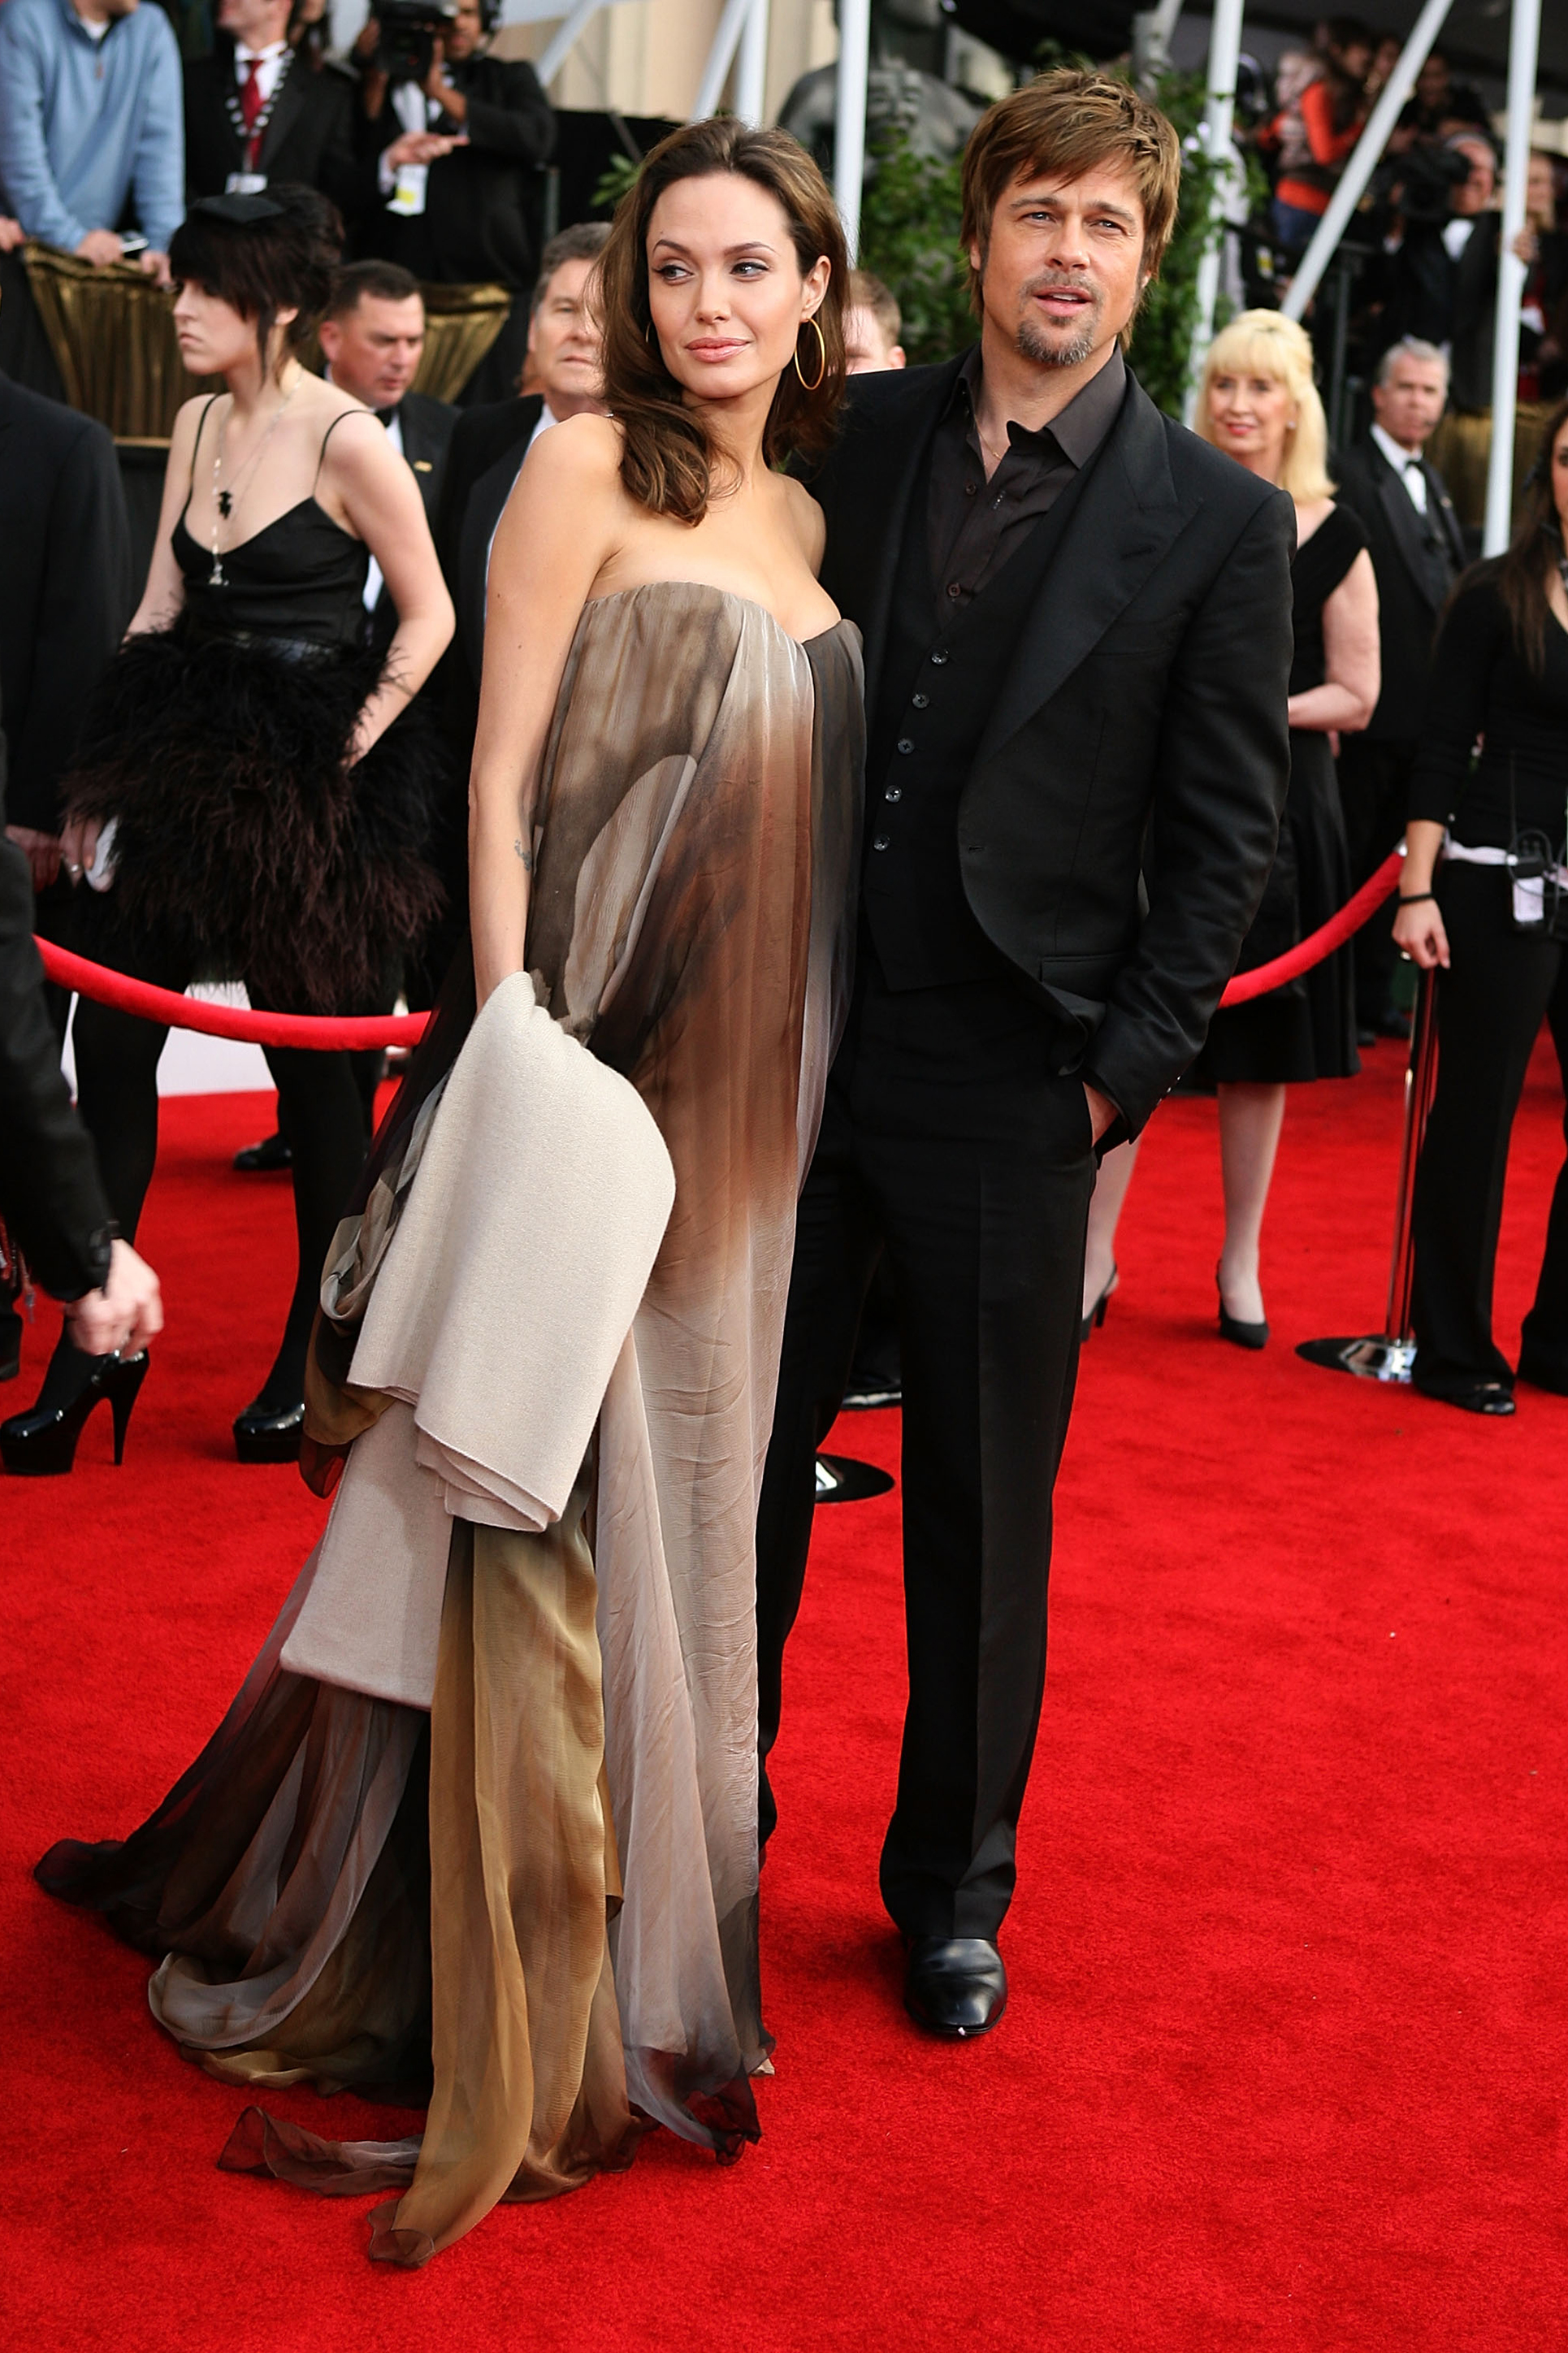 Angelina Jolie and Brad Pitt arrive at the 14th annual Screen Actors Guild awards on Jan. 27, 2008 in Los Angeles.